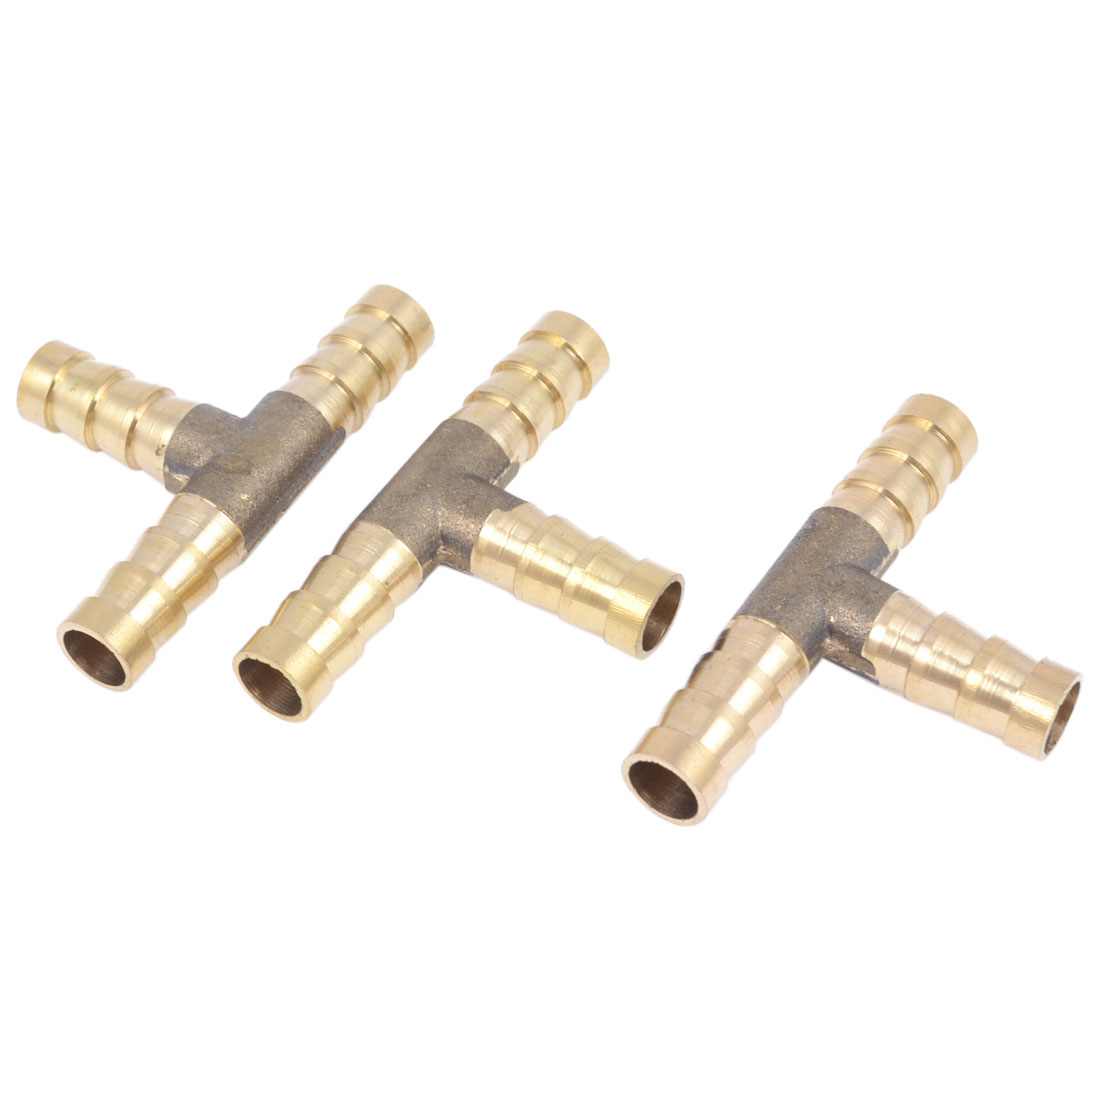 3 Pieces Air Pneumatic Brass T Shape 8mm to 8mm Quick Barb Coupler Connector